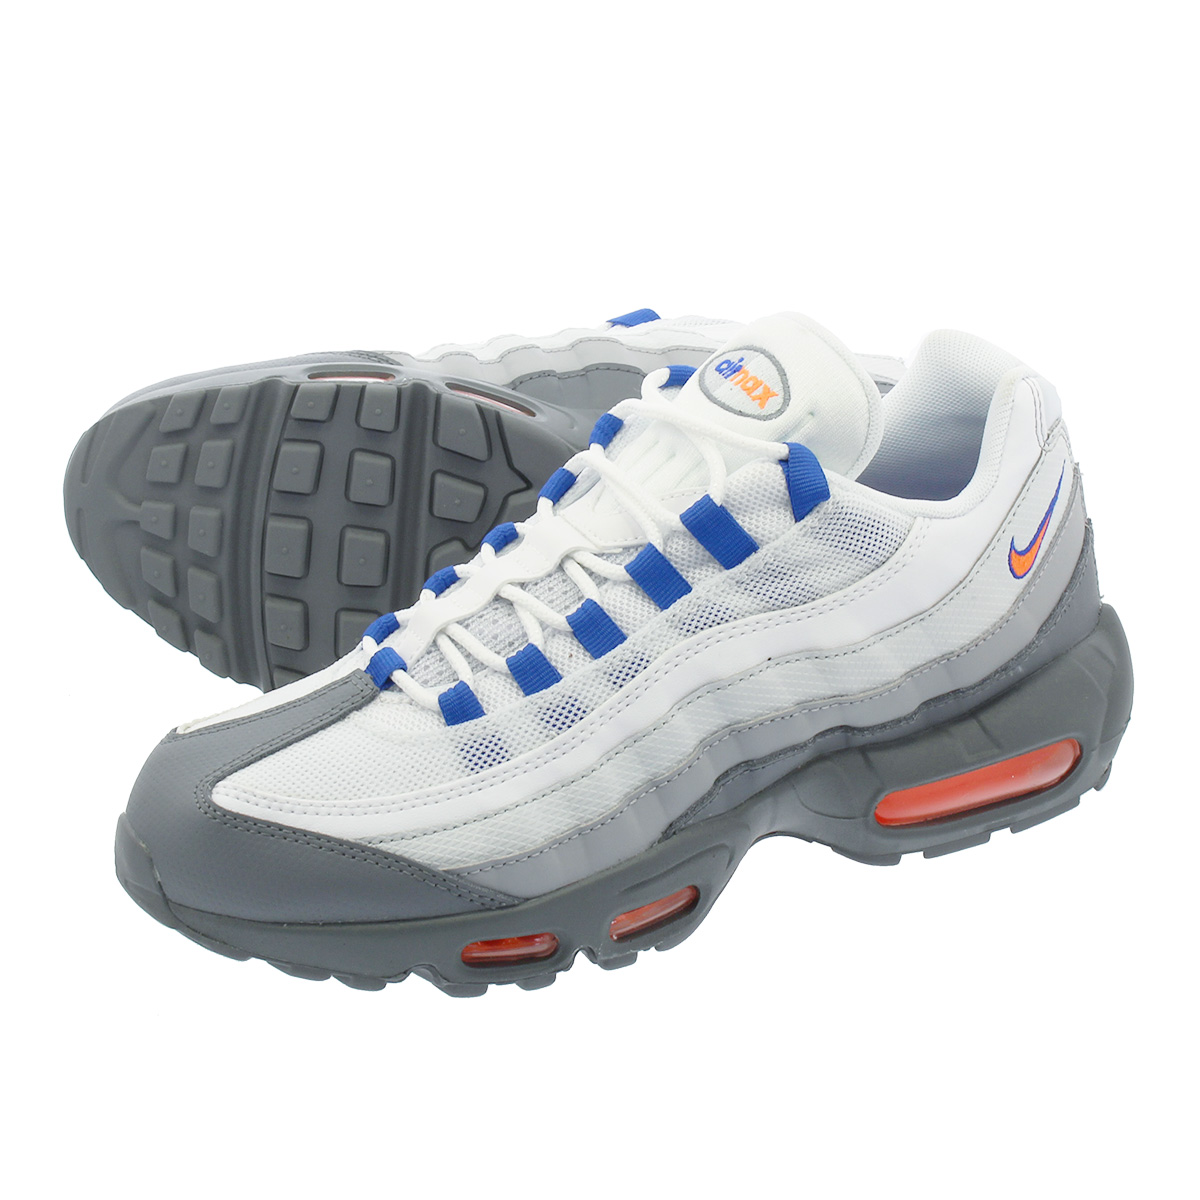 NIKE AIR MAX 95 ESSENTIAL ナイキ エア マックス 95 エッセンシャル COOL GREY/TOTAL ORANGE/WHITE 749766-033